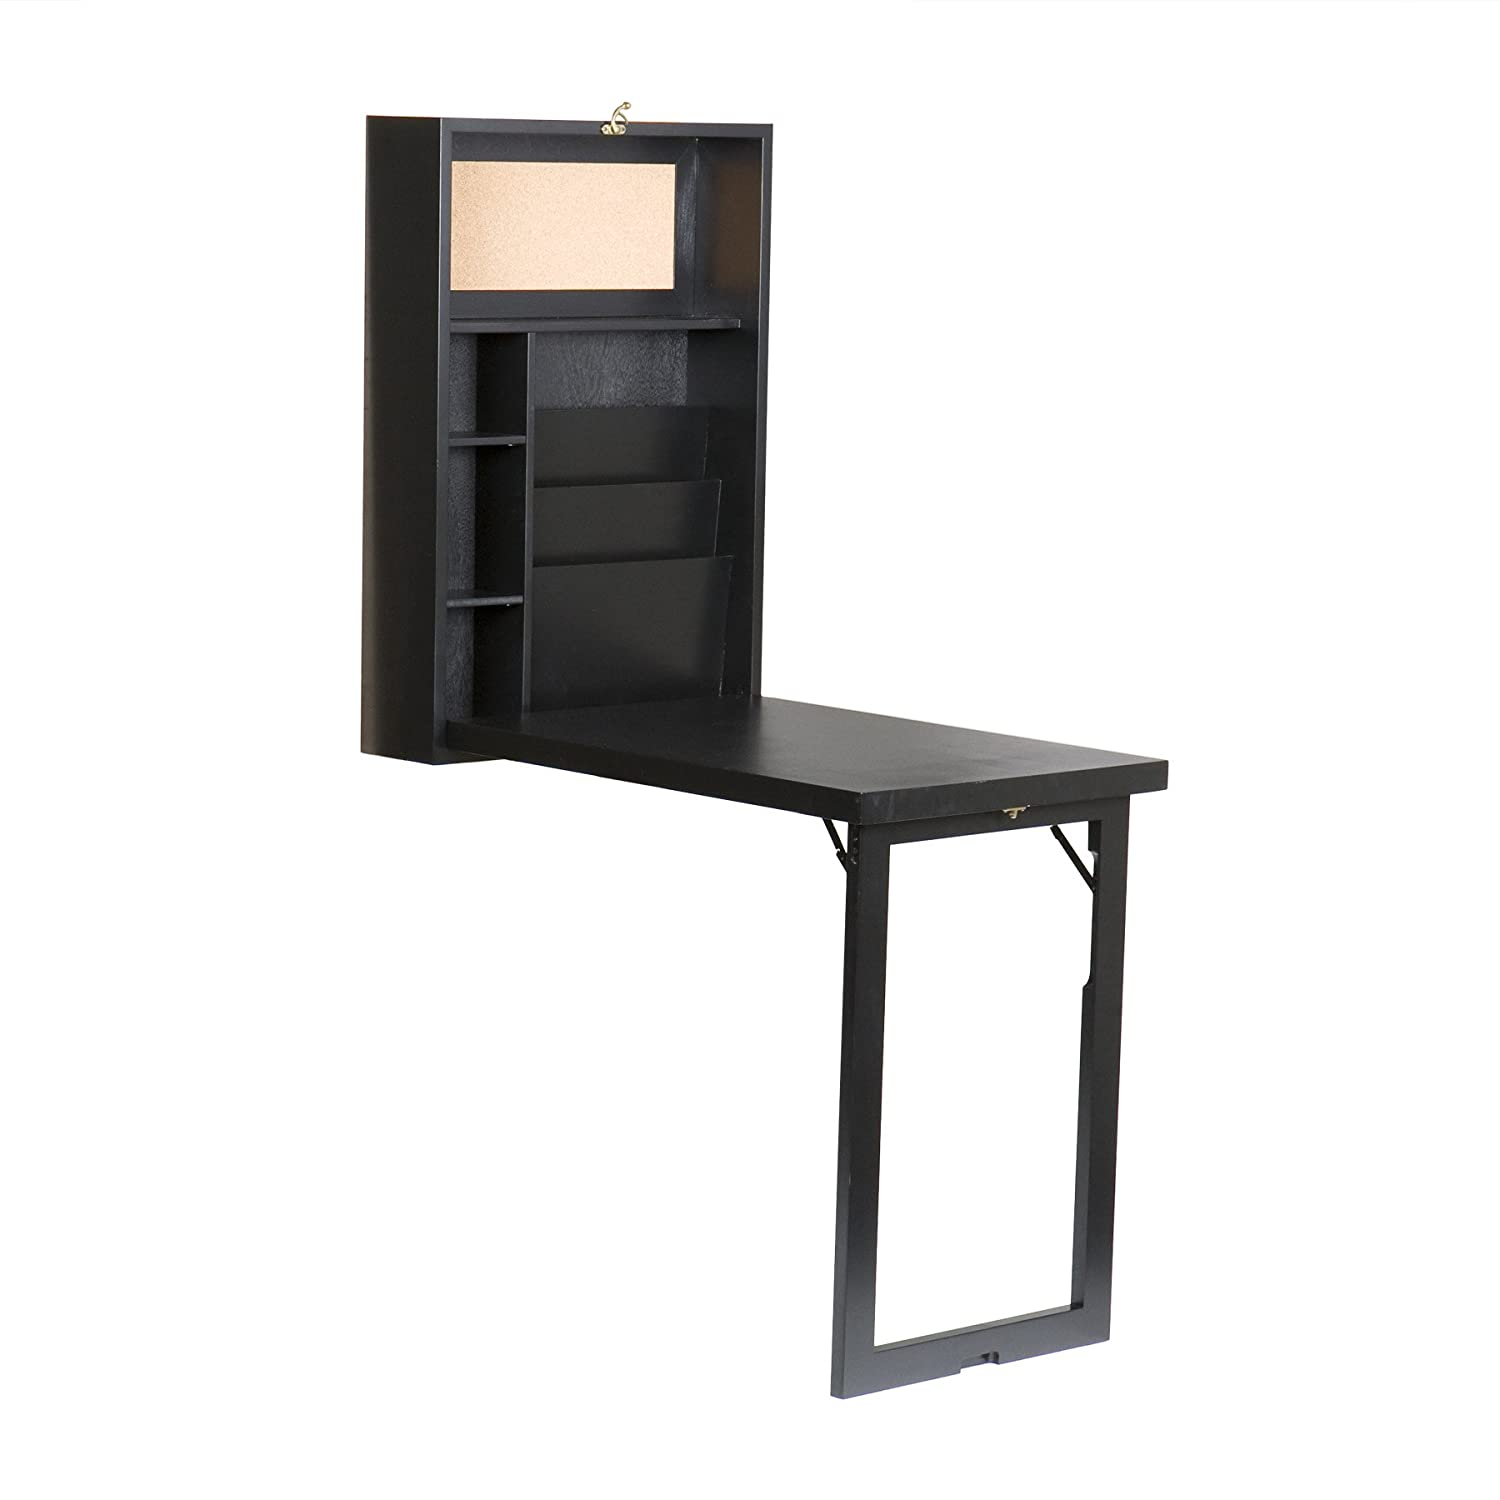 Amazon Southern Enterprises Fold Out Convertible Desk 22 Wide Black Finish Kitchen Dining